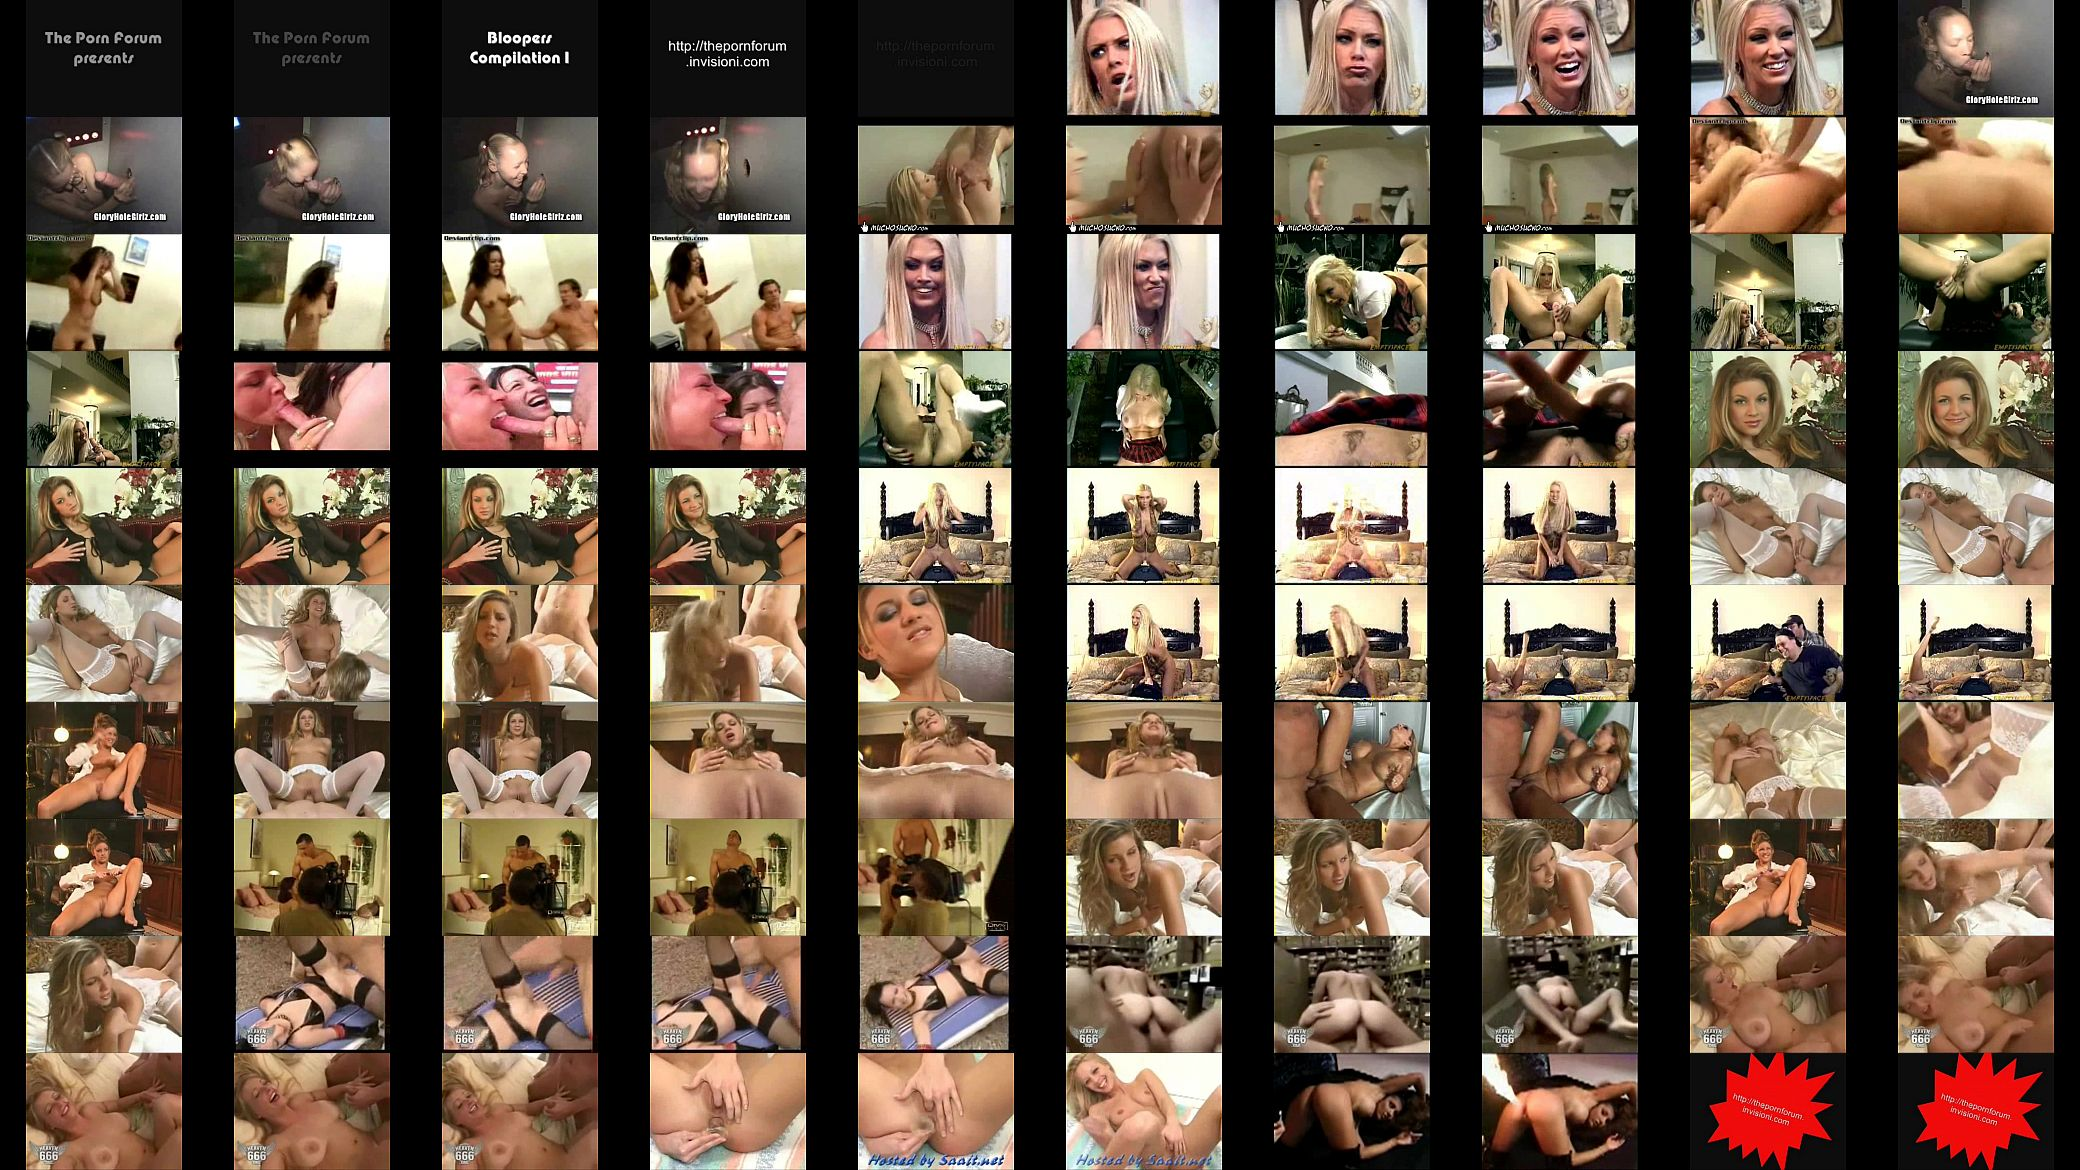 Compilations hottest videos porno free! blooper